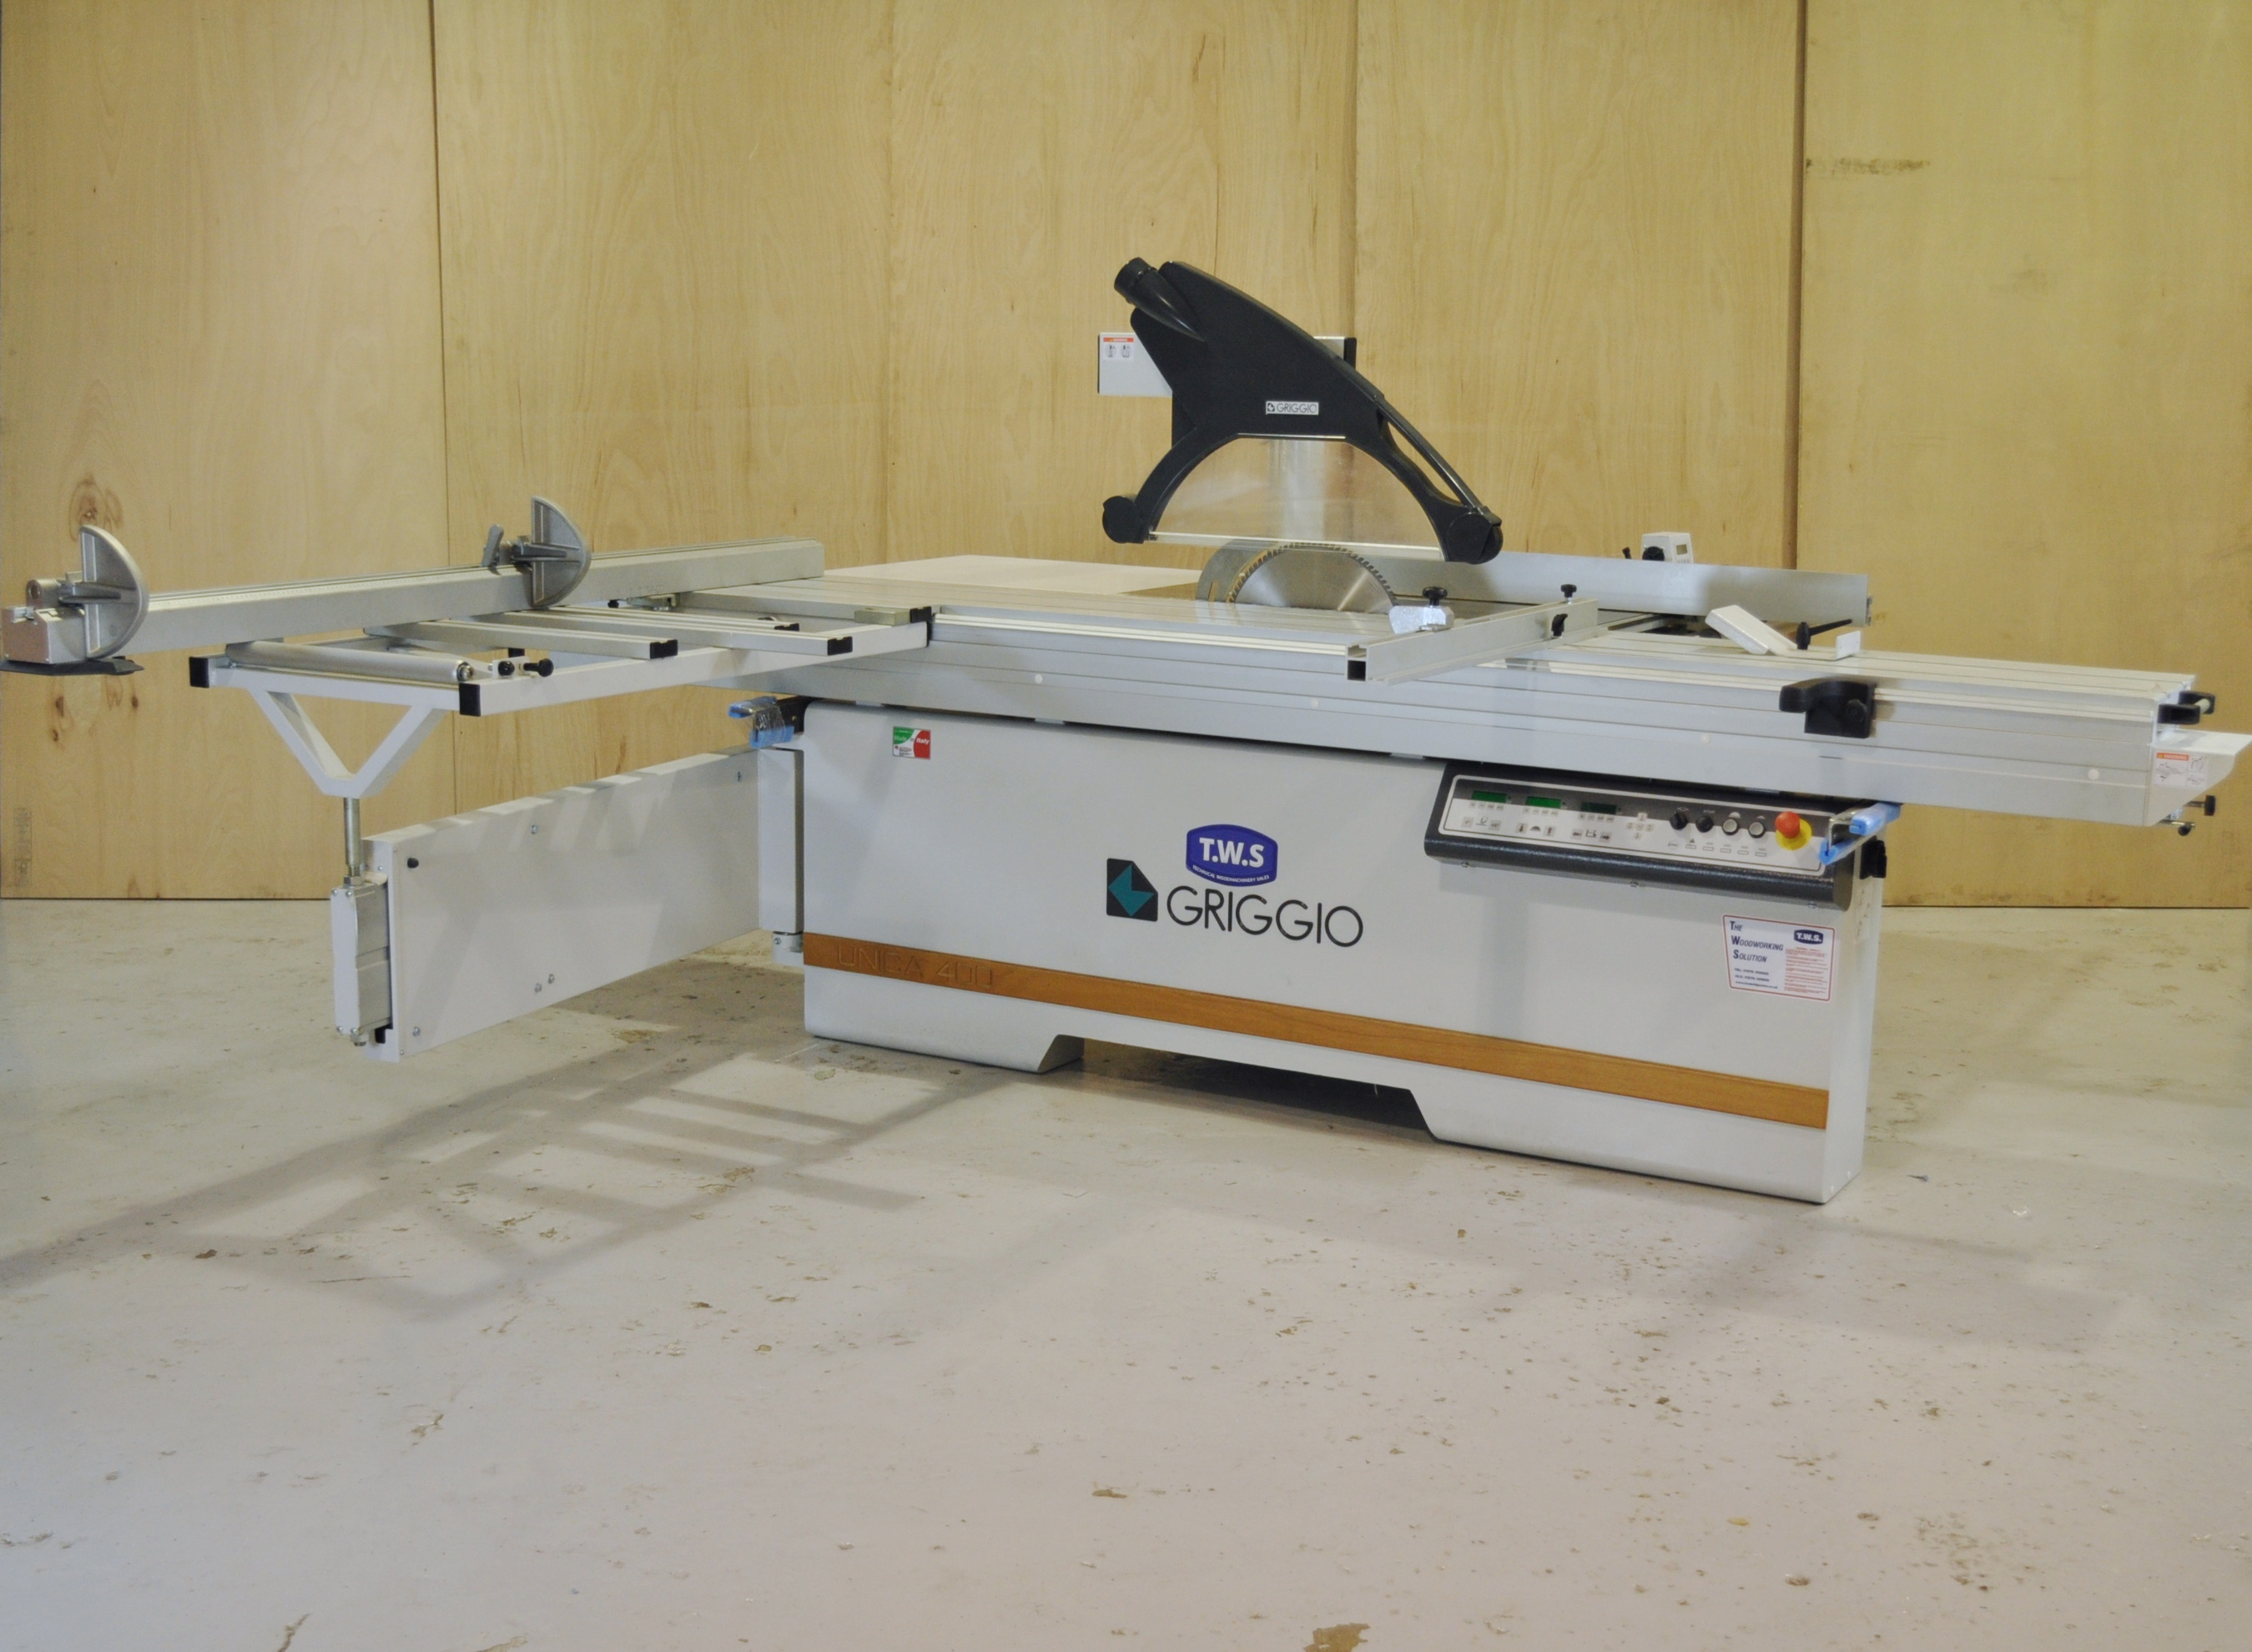 New Griggio Unica 400E Panelsaw woodworking machine